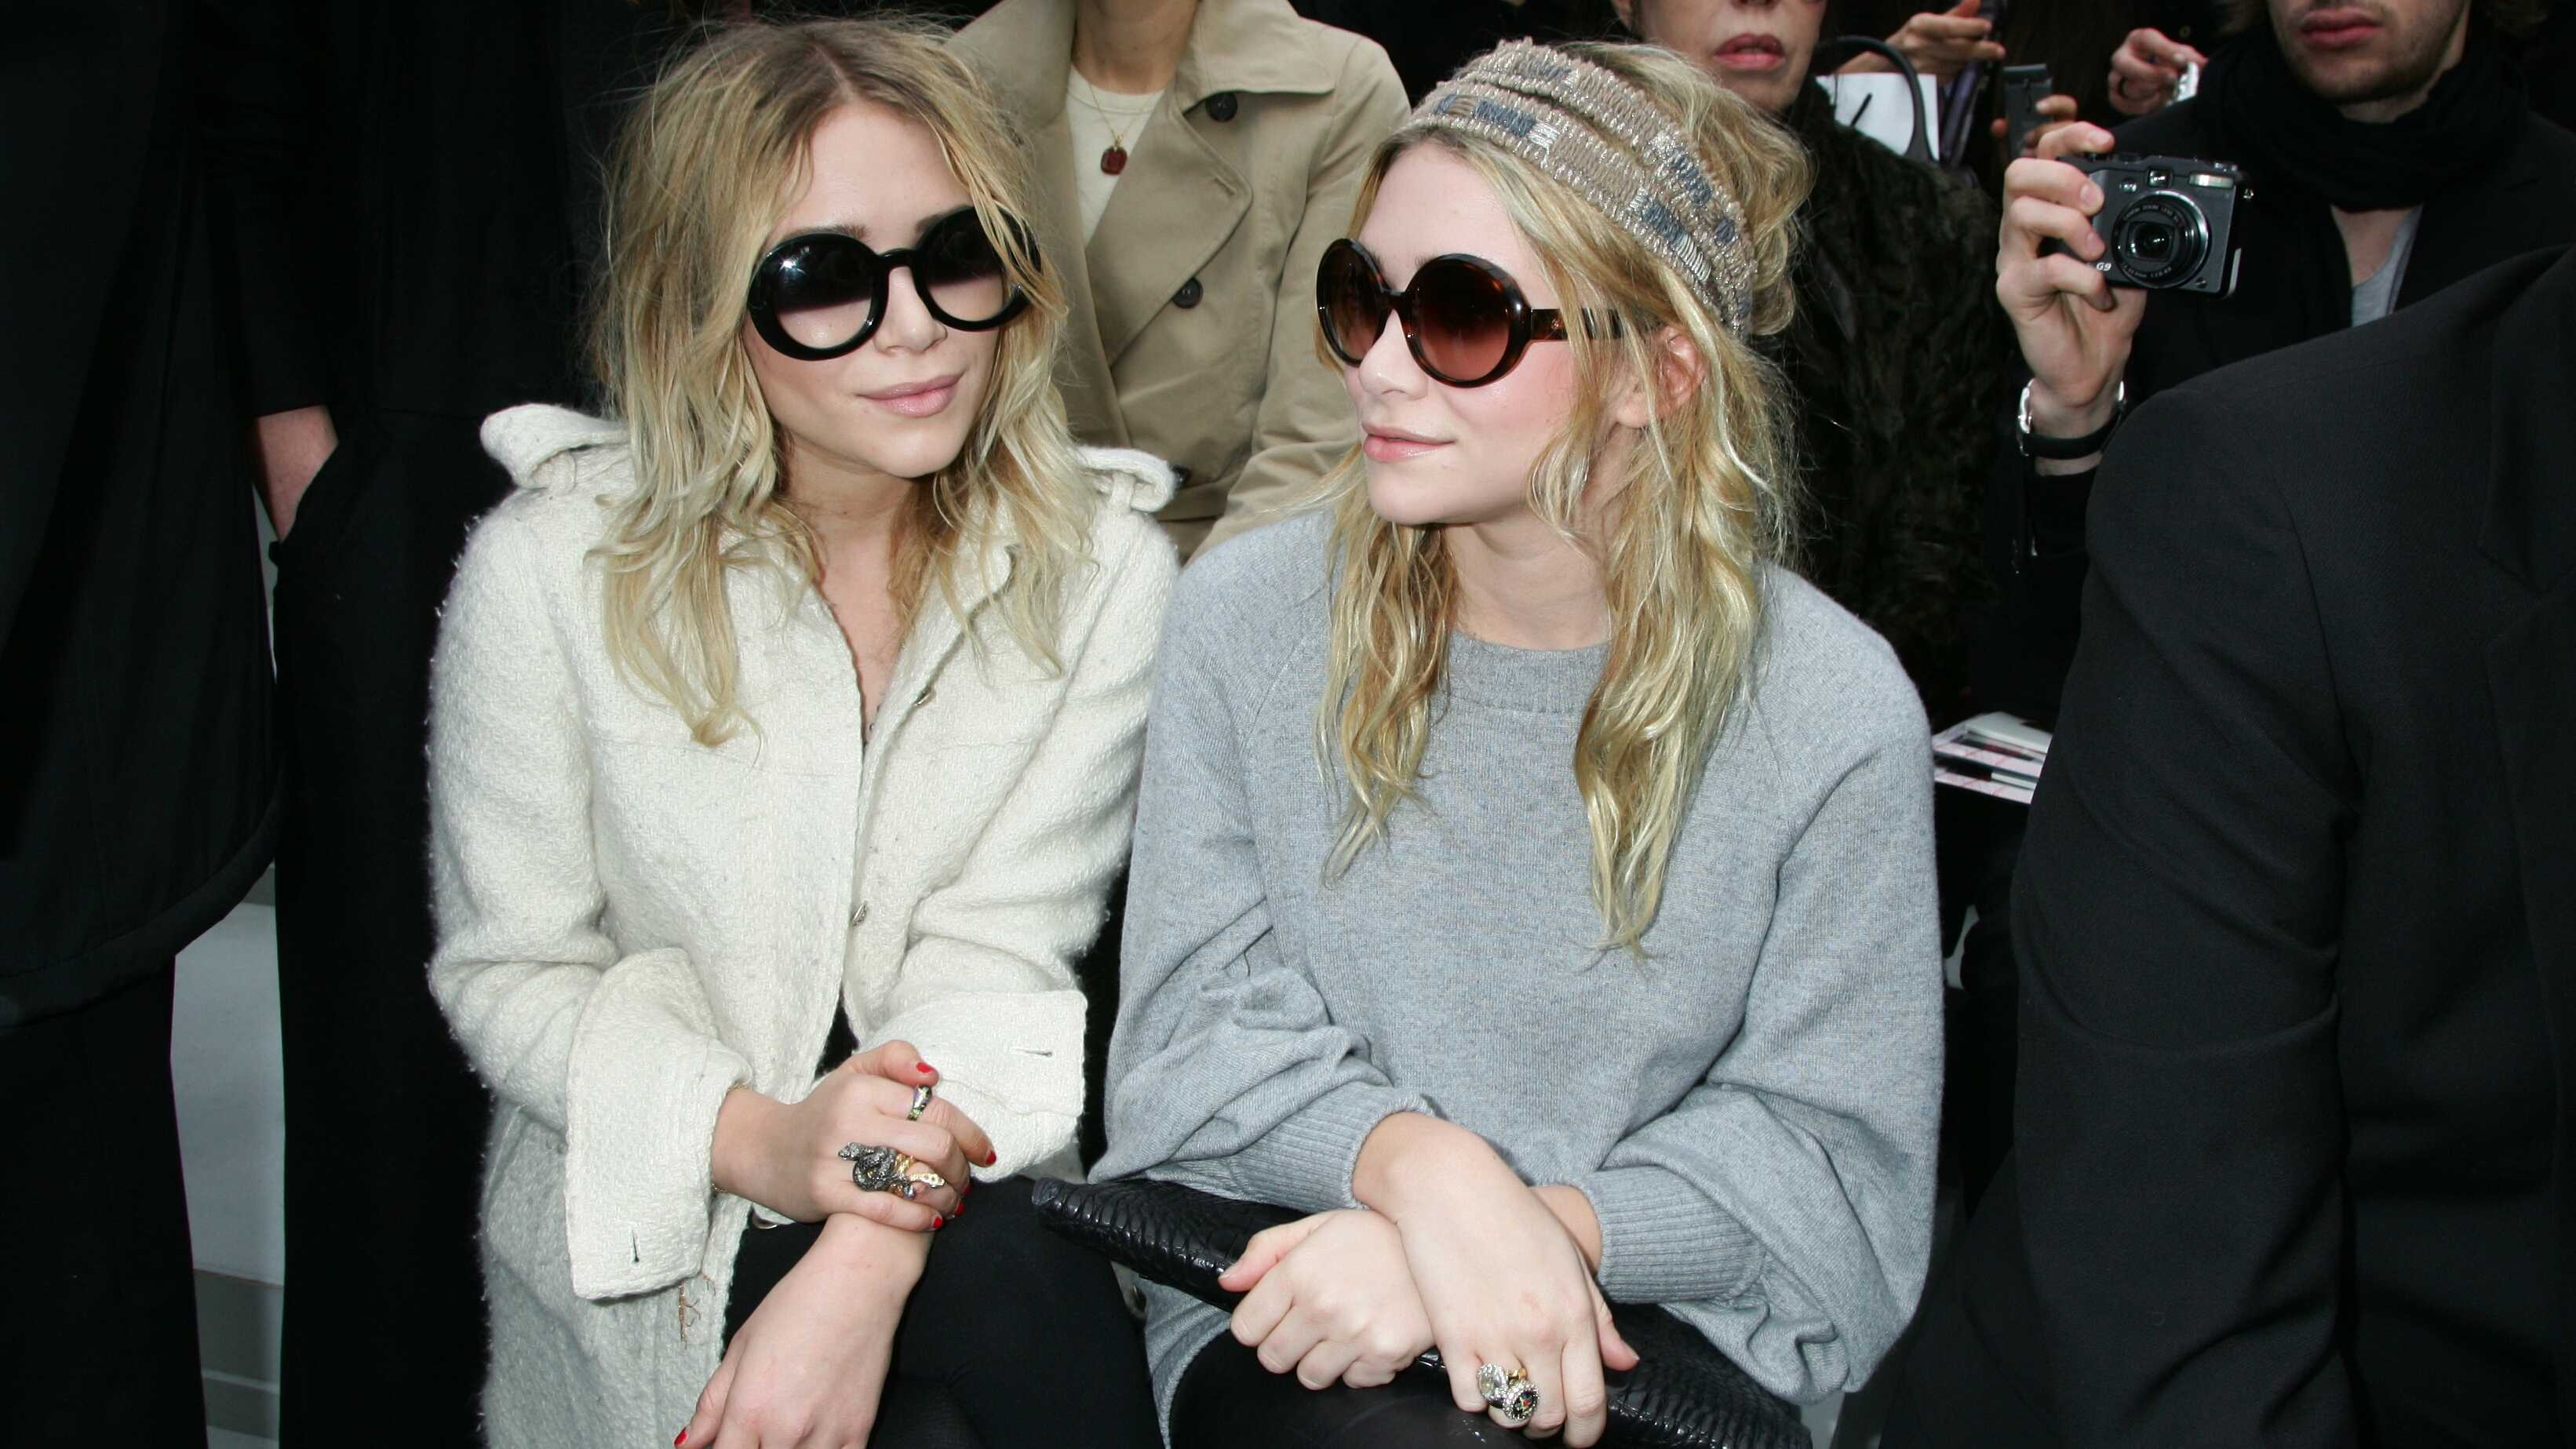 Does Mary-Kate Olsen's Chanel Coat Look Familiar? Because It Should - Grazia USA